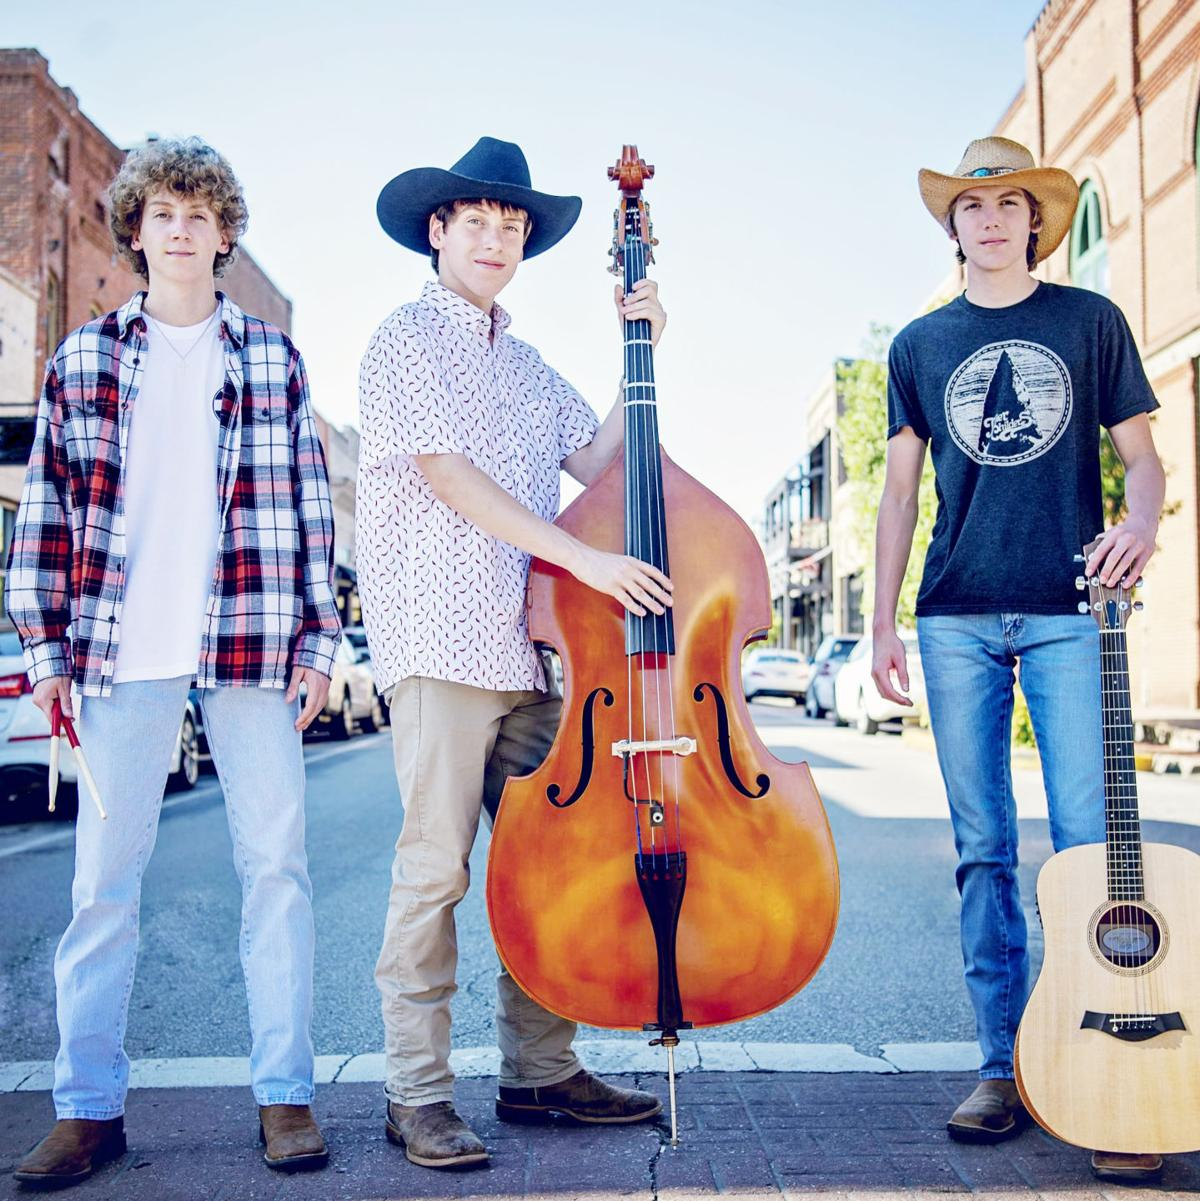 Get Downtown Festival set for Friday, Saturday